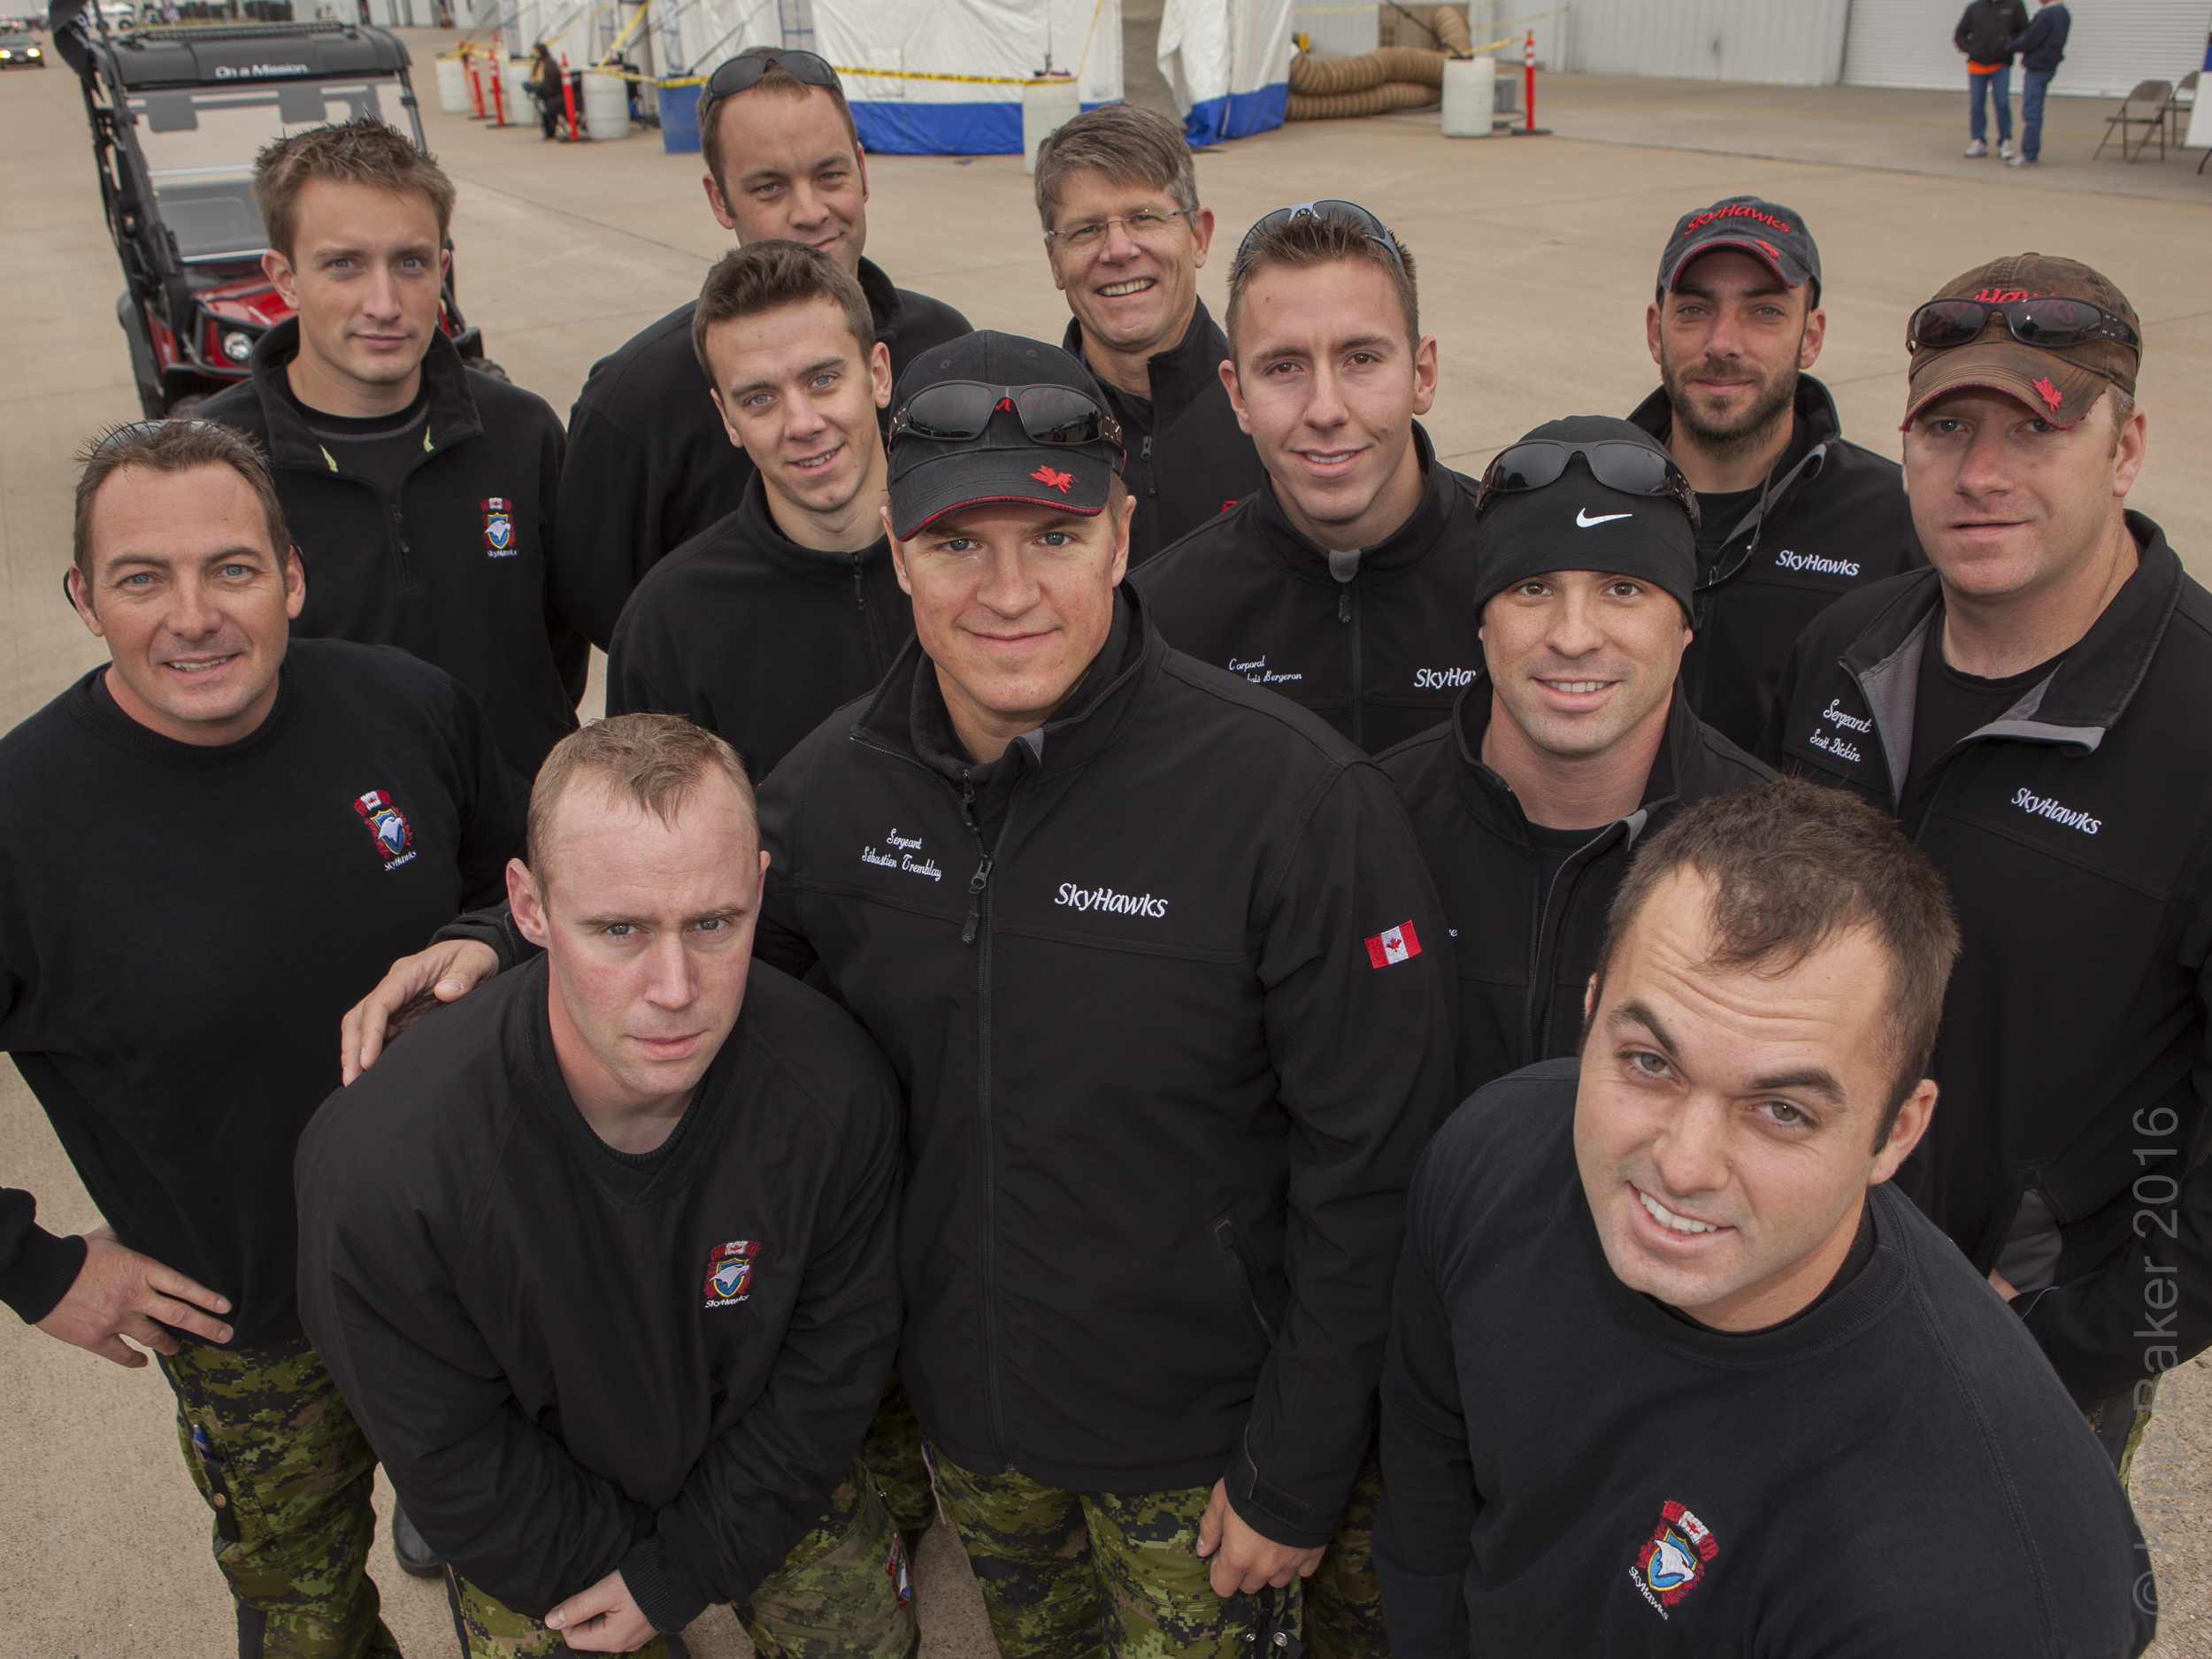 Shot for Bell Helicopter internal marketing campaign showing CEO John Garrison (back row with glasses) posing with parachuting jump team - Alliance Air Show. Copyright © Kipp Baker, All rights reserved.